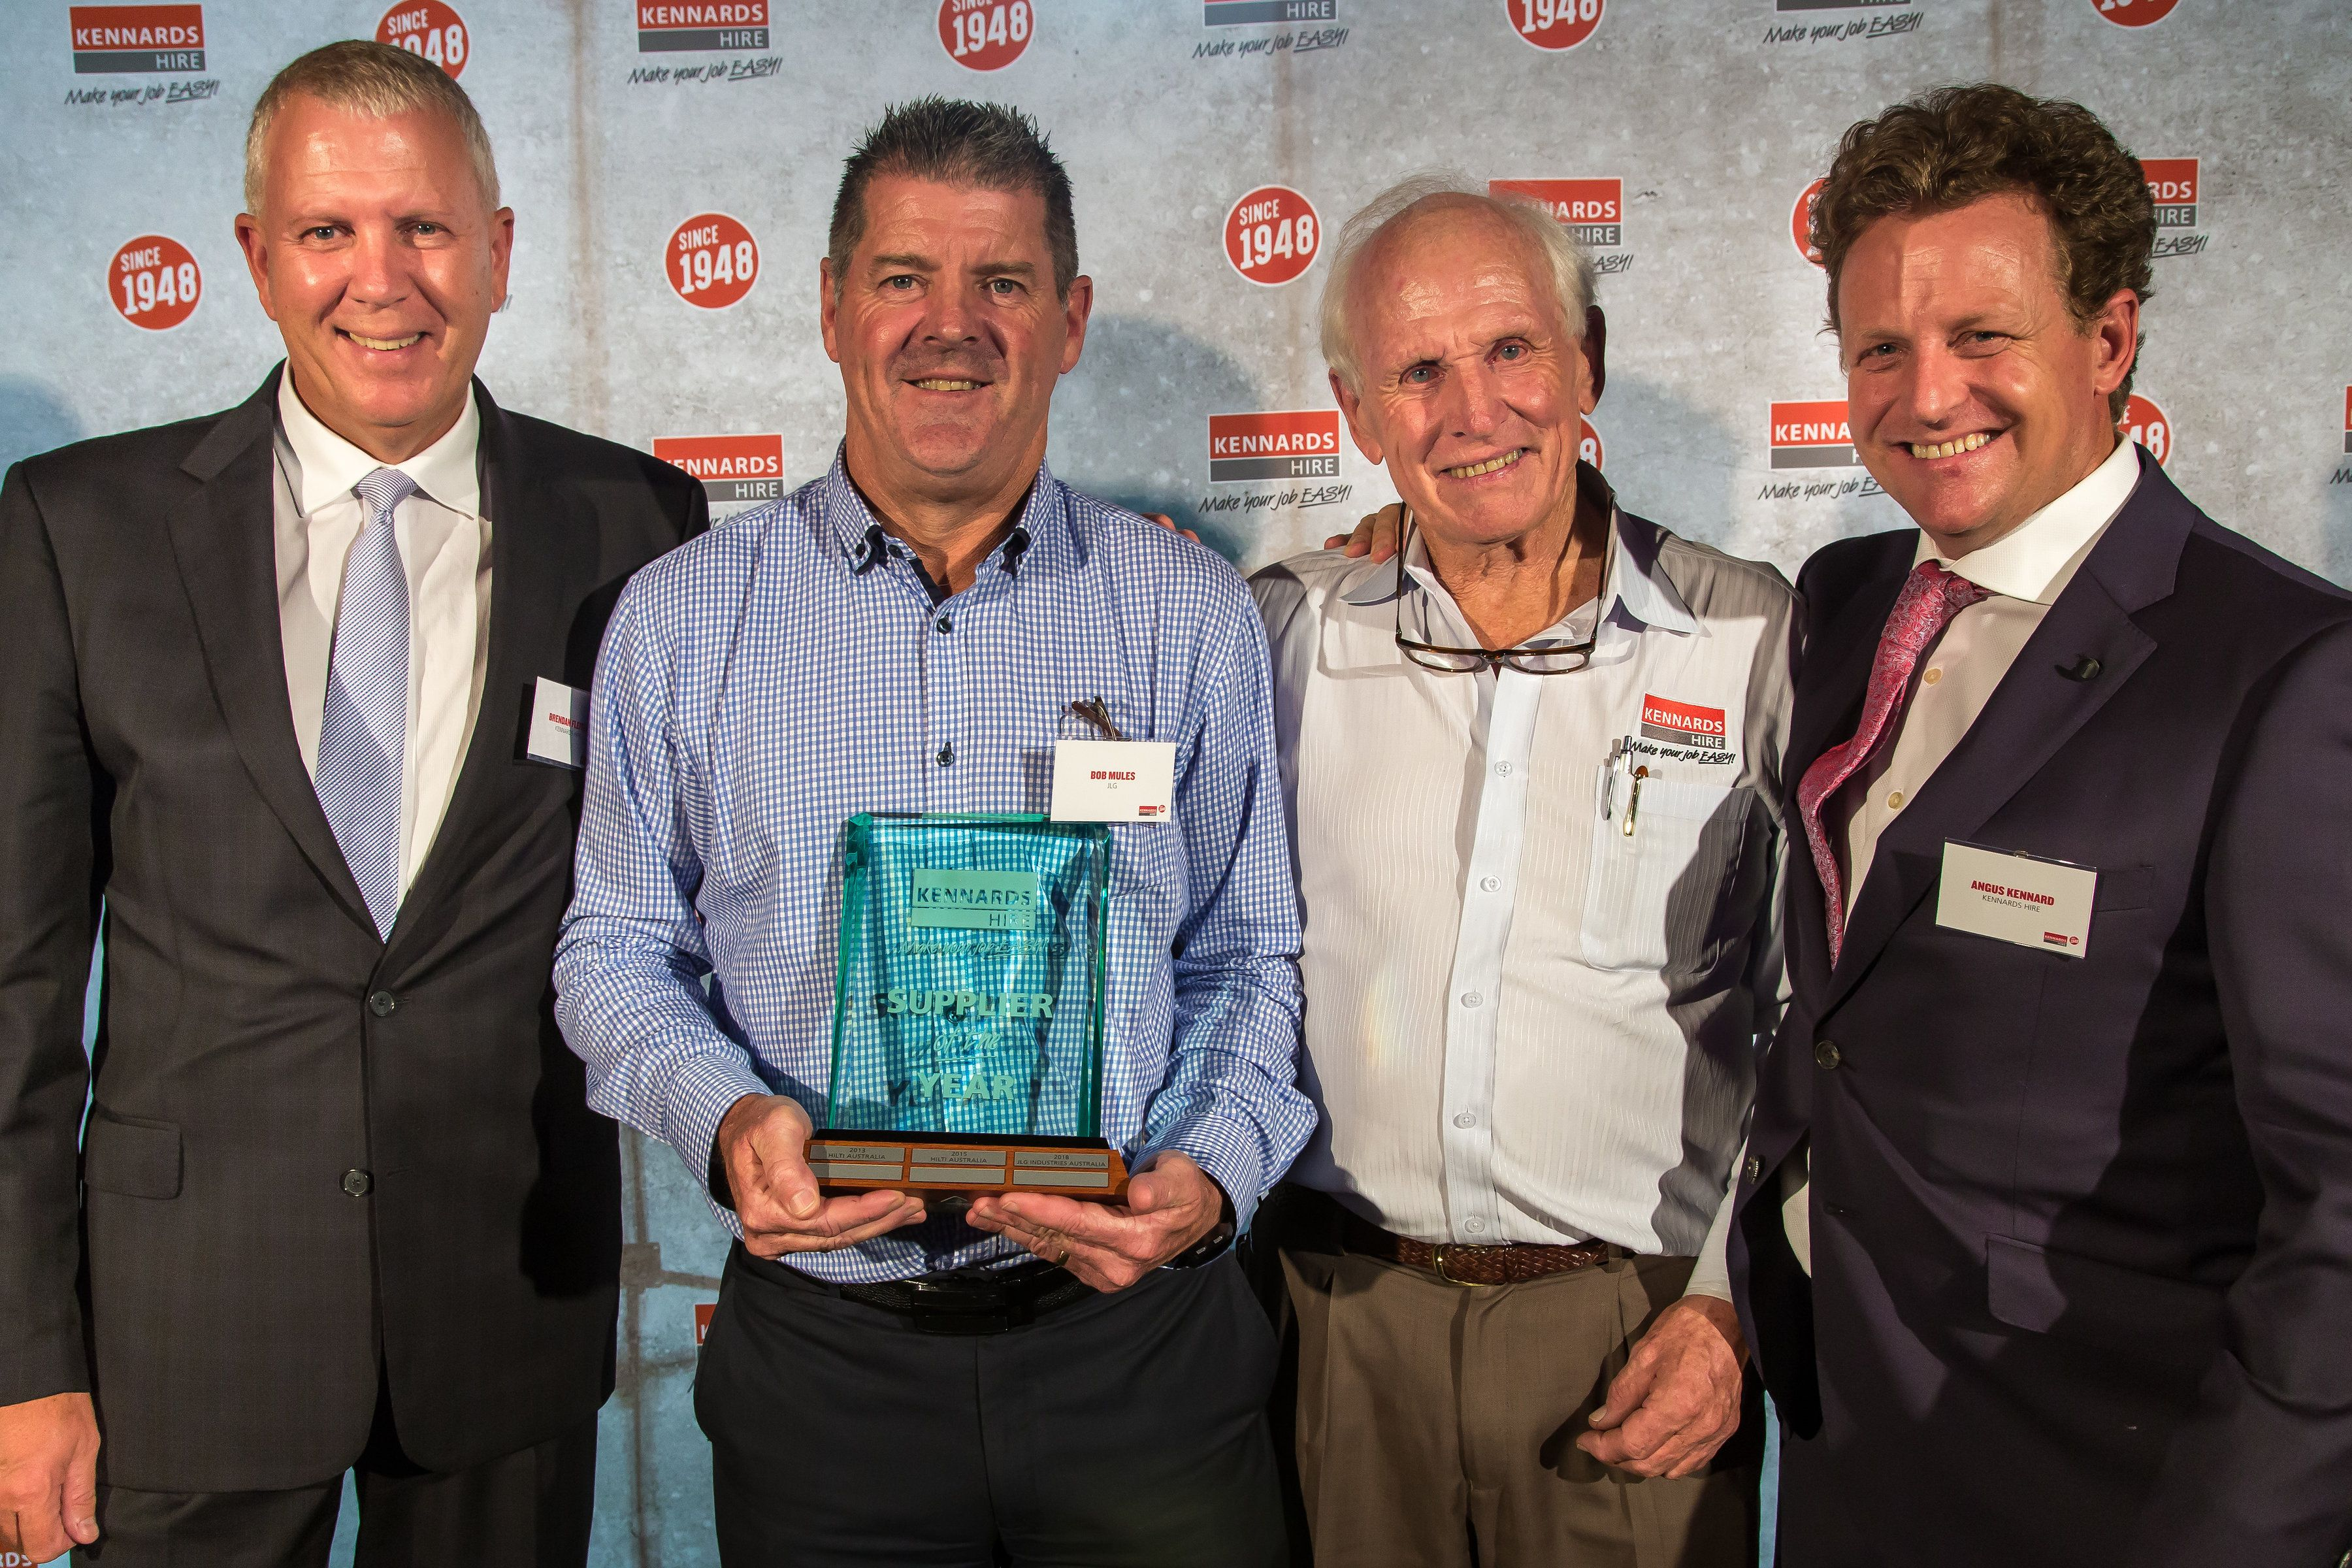 JLG Industries crowned Kennards Hire Supplier of the Year 2018